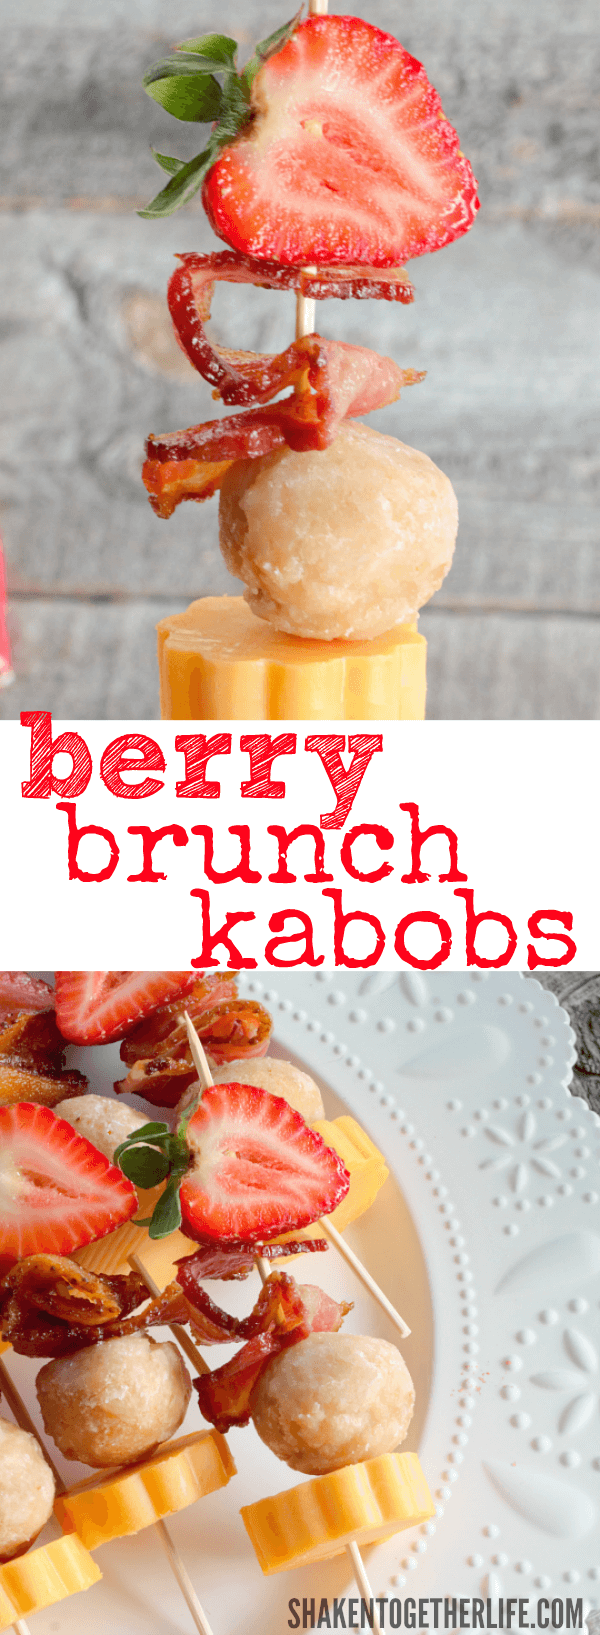 Berry Brunch Kabobs have all the best sweet and savory bites from brunch! Easy to serve and easy to eat, this is the perfect easy brunch recipe!